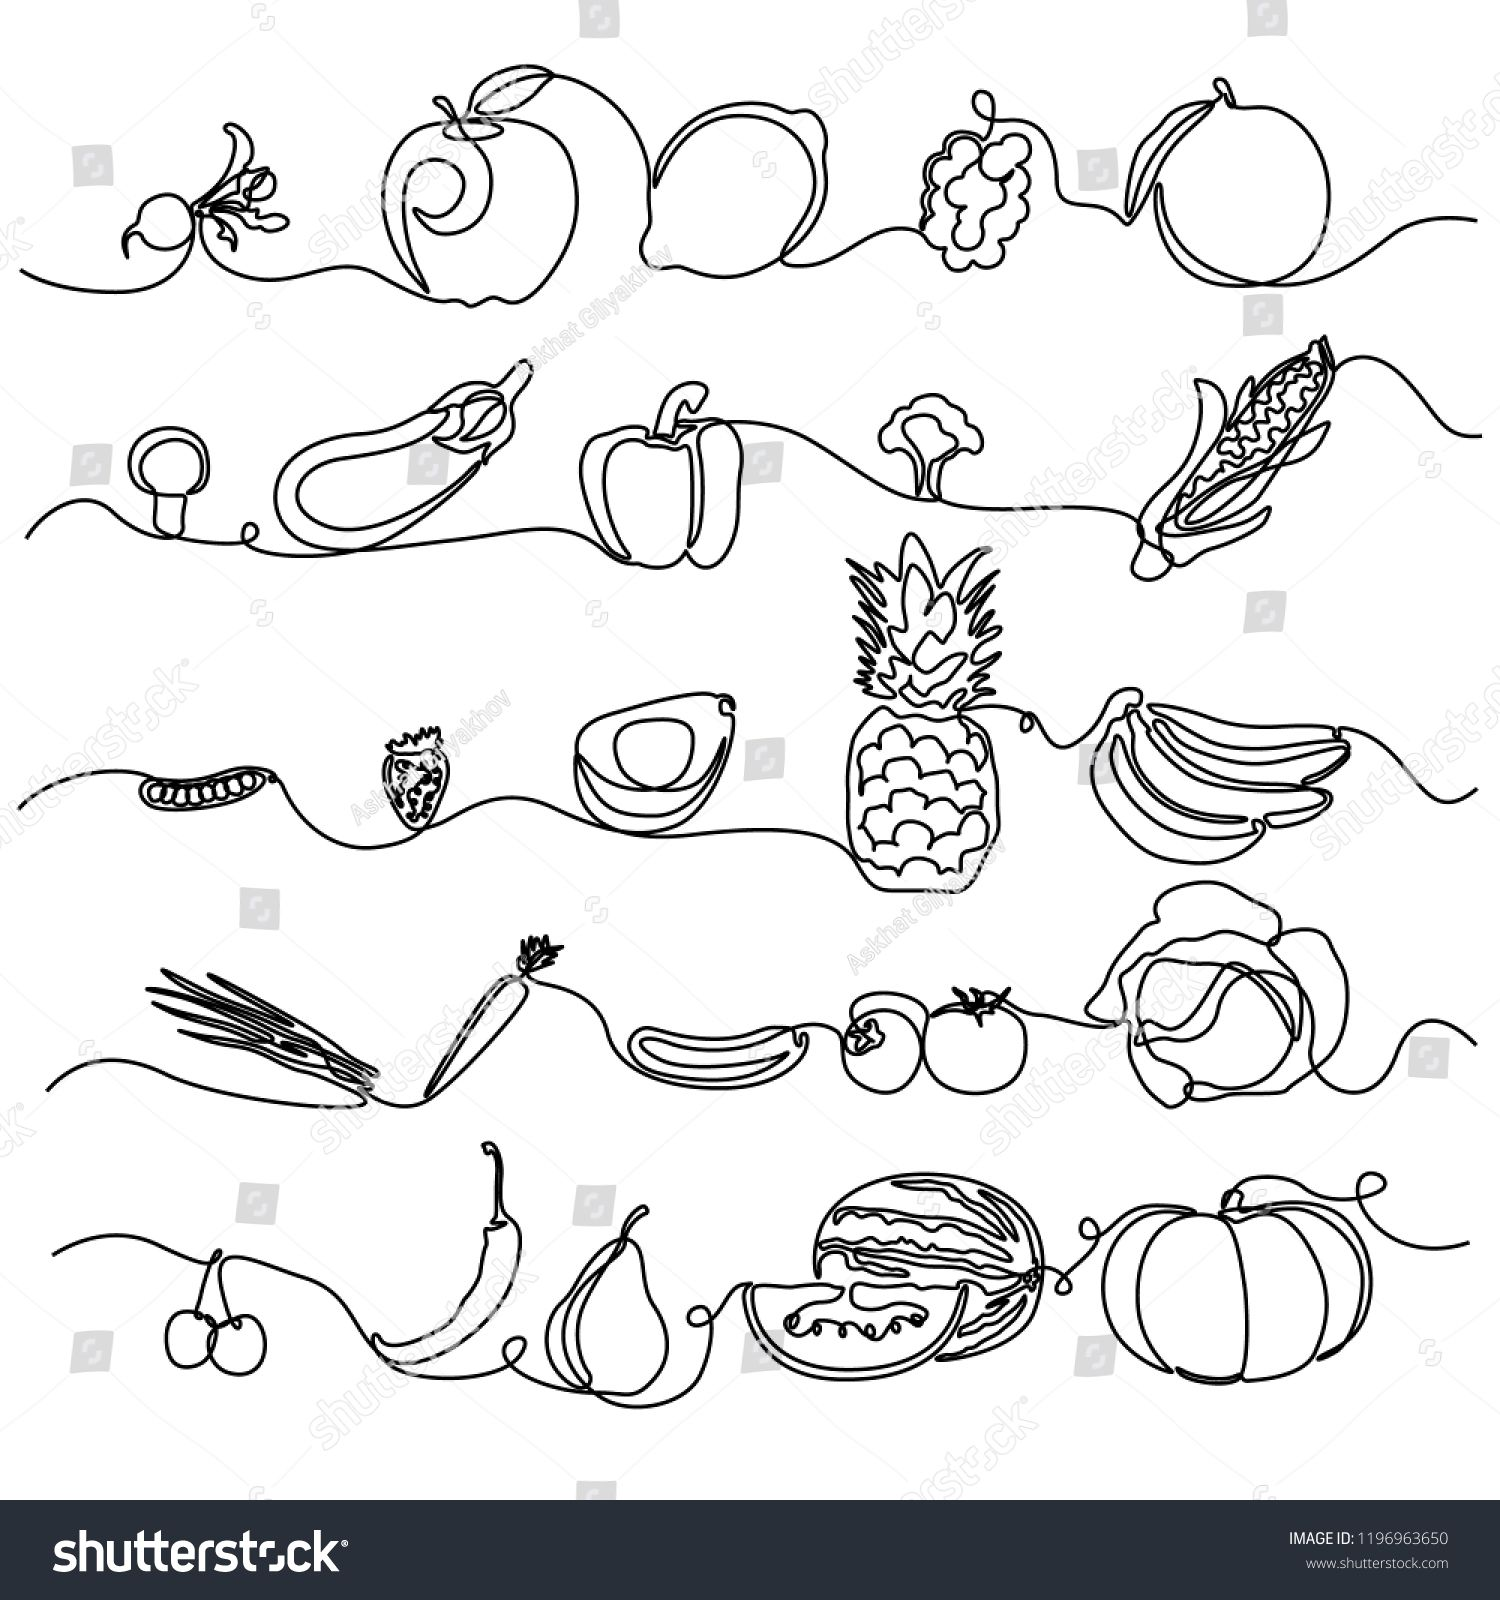 Continuous Line Fruits And Vegetables Design Element For Grocery Store Vegetable Shop Vector Illus Vegetable Illustration Vegetable Design Line Illustration